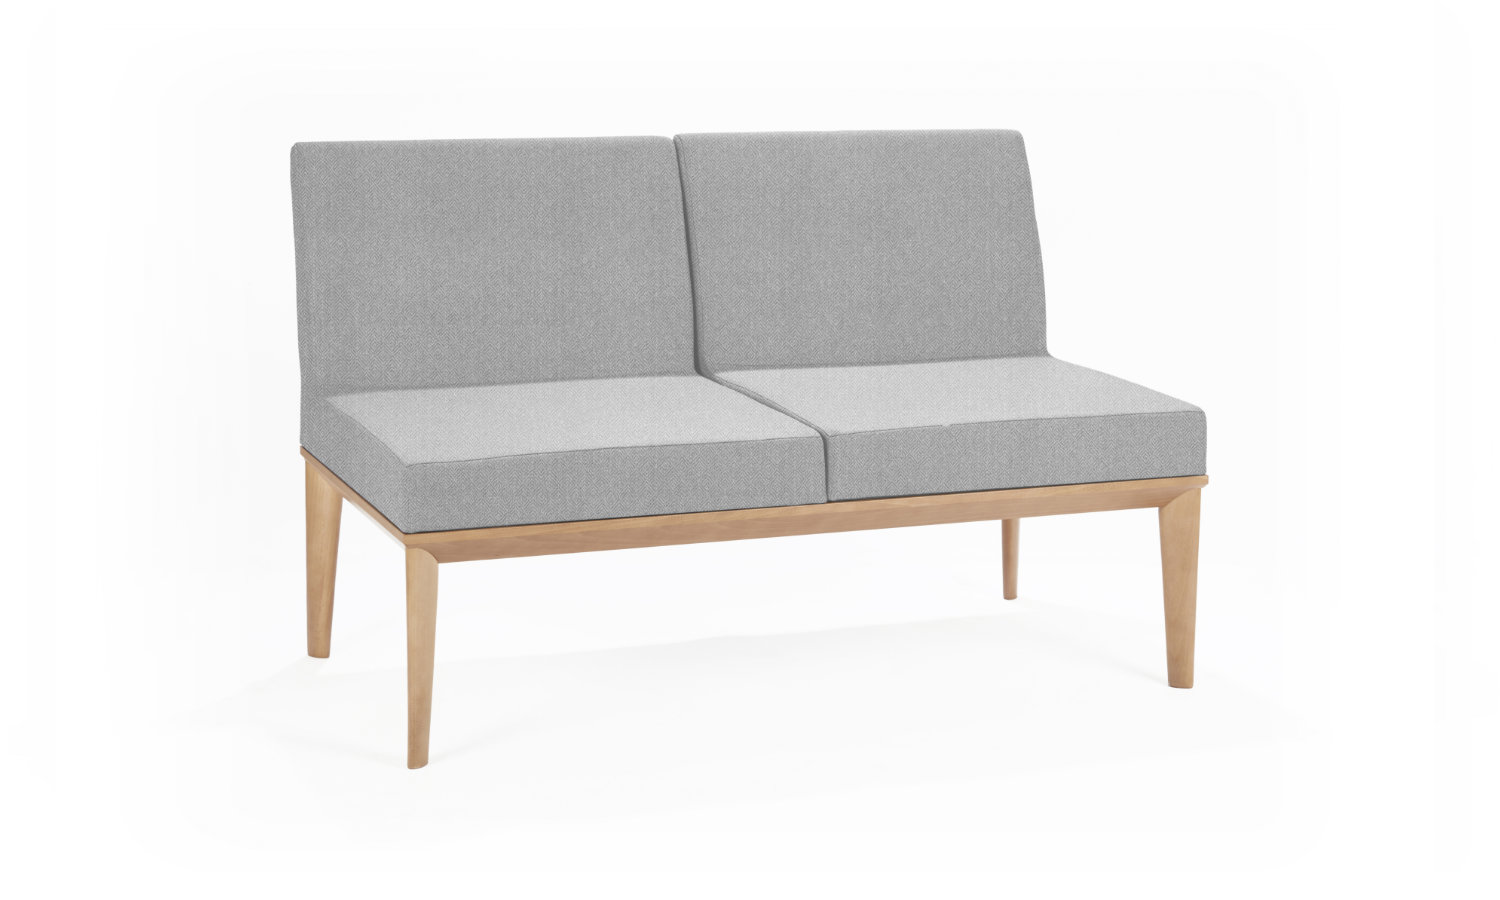 office soft seating grey for 2 people